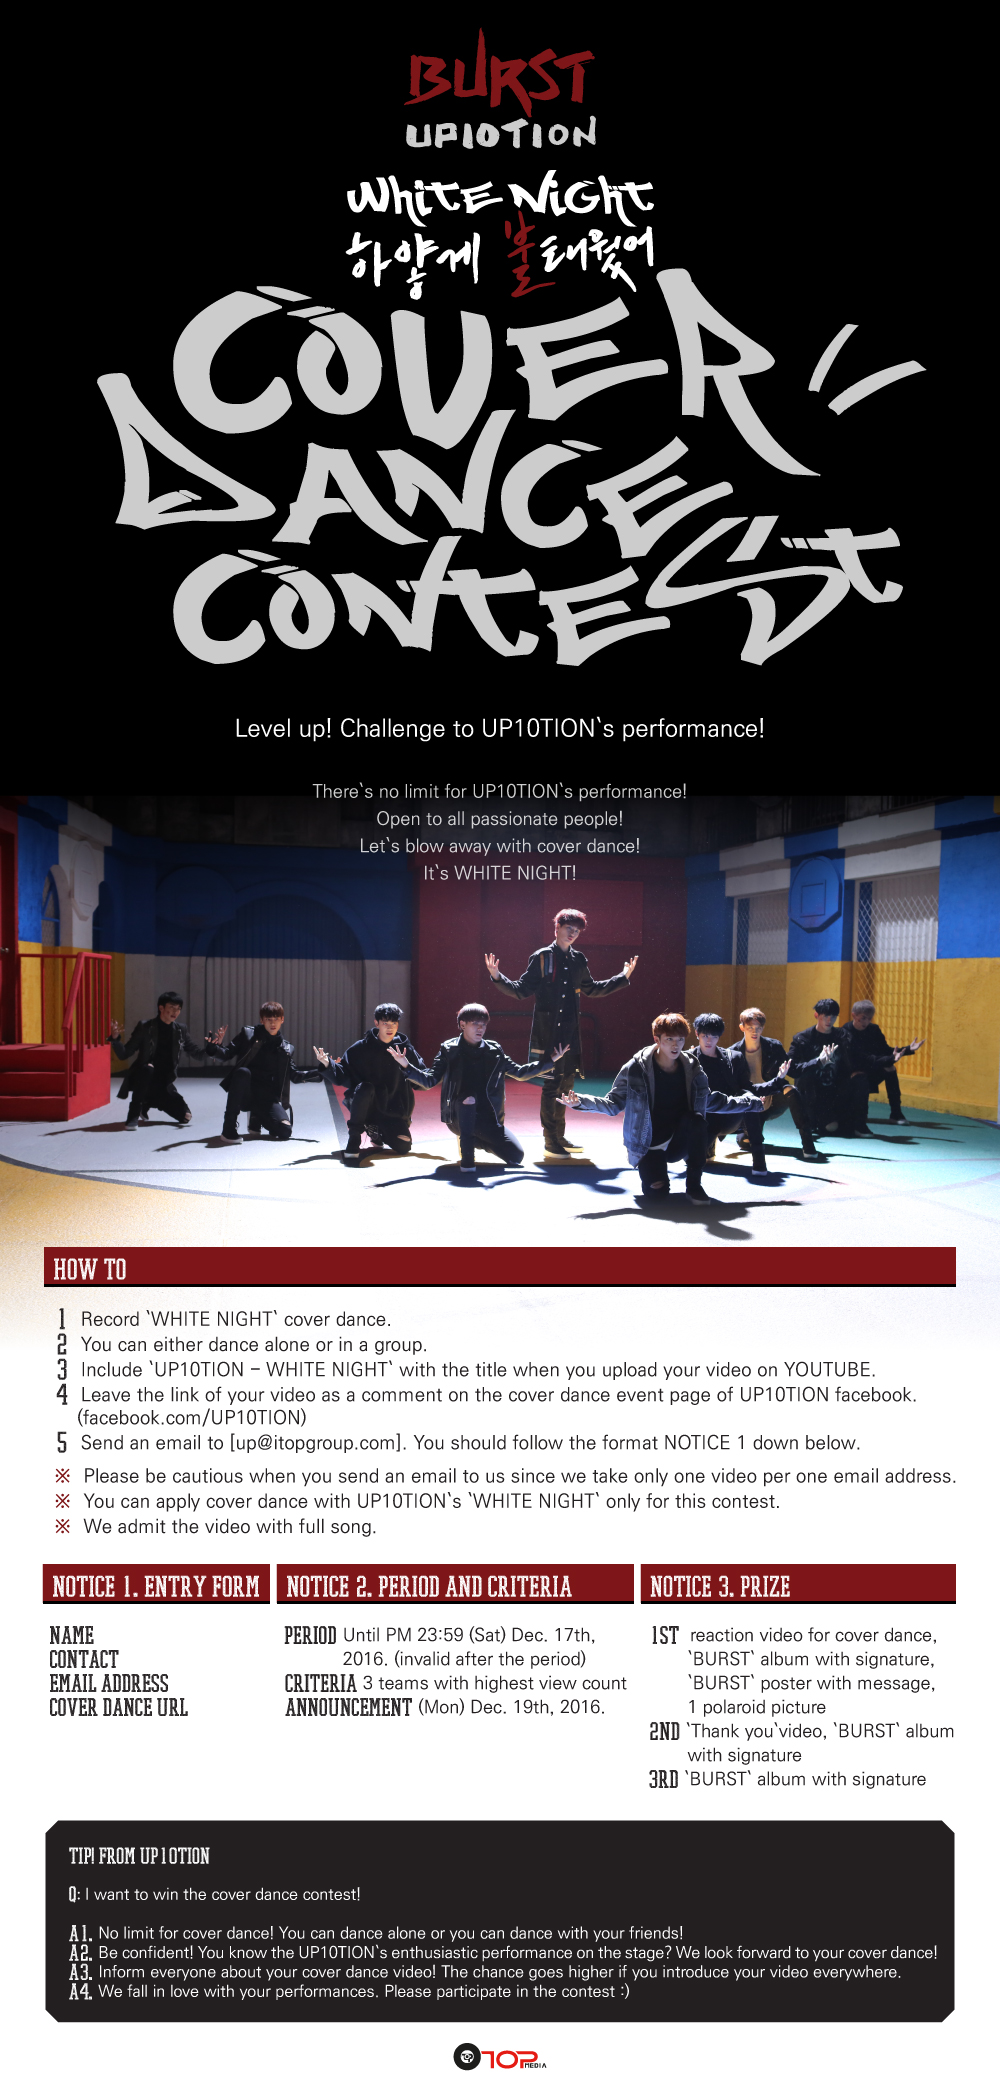 UP10TION_WHITE_NIGHT_COVER_DANCE_IMAGE